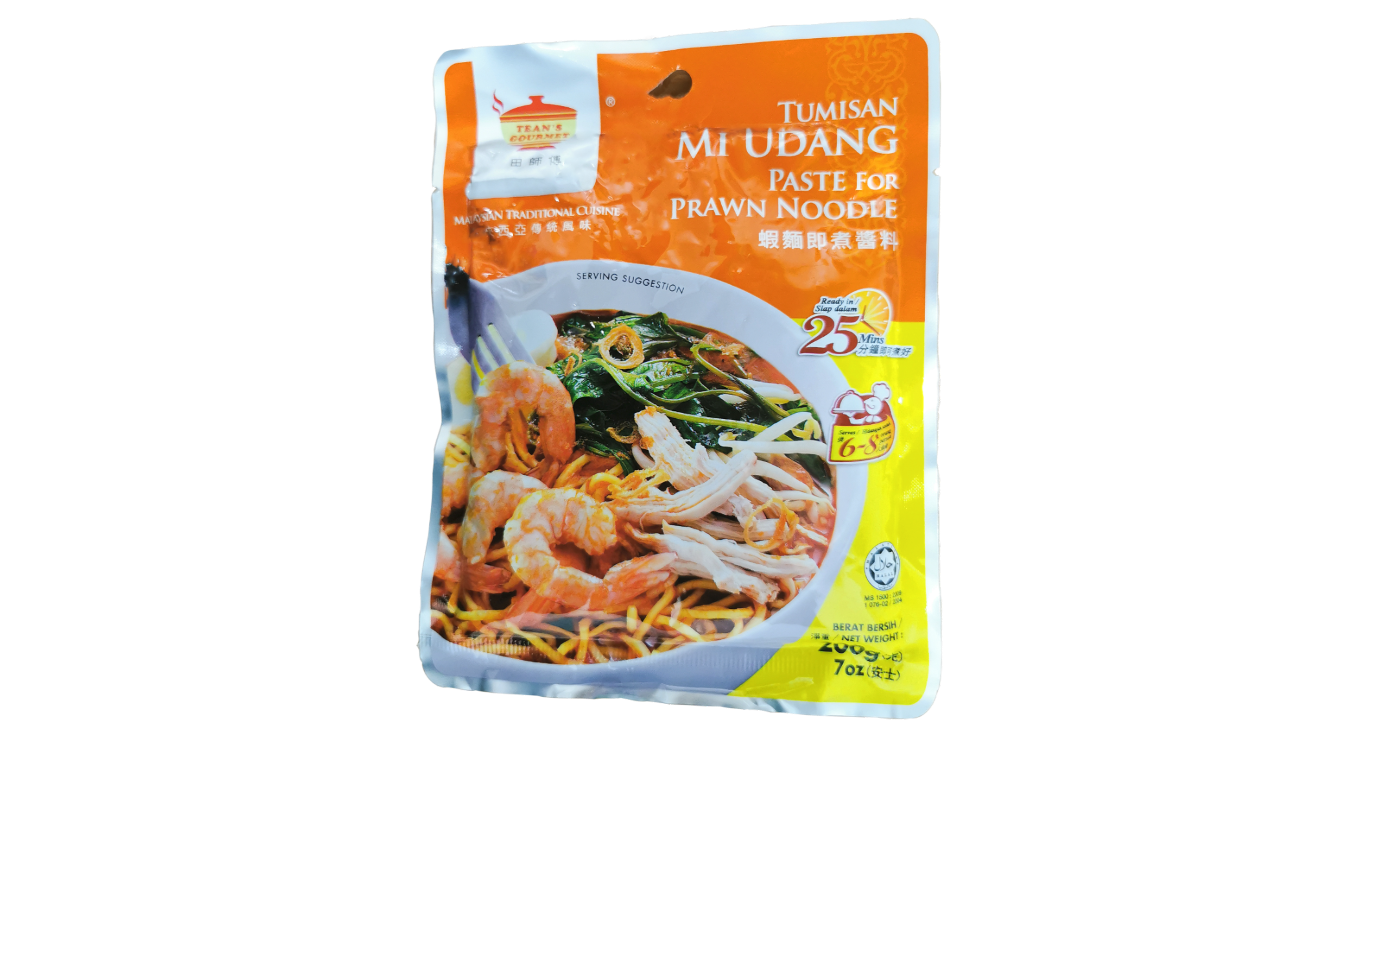 Teans Gourmet Tumisan Mi Udang (Paste for Prawn Noodle)